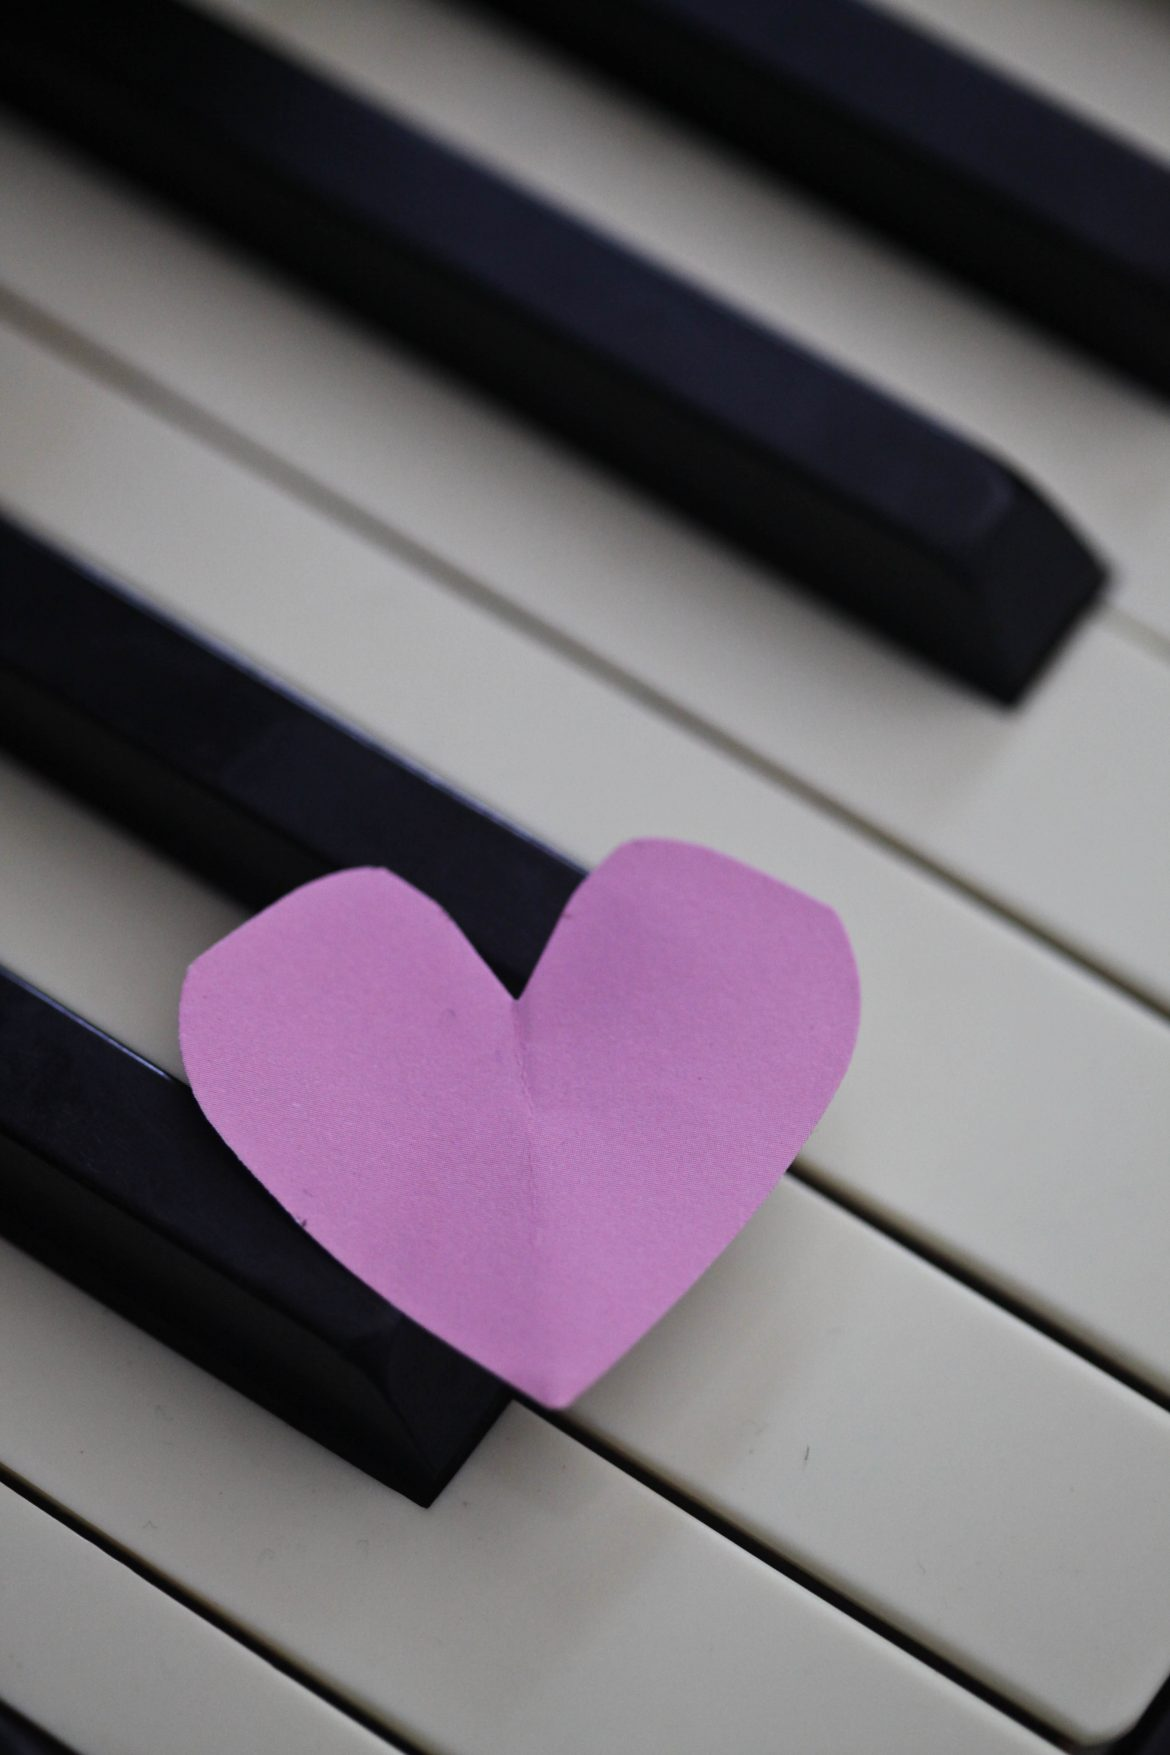 cut out paper heart on keyboard